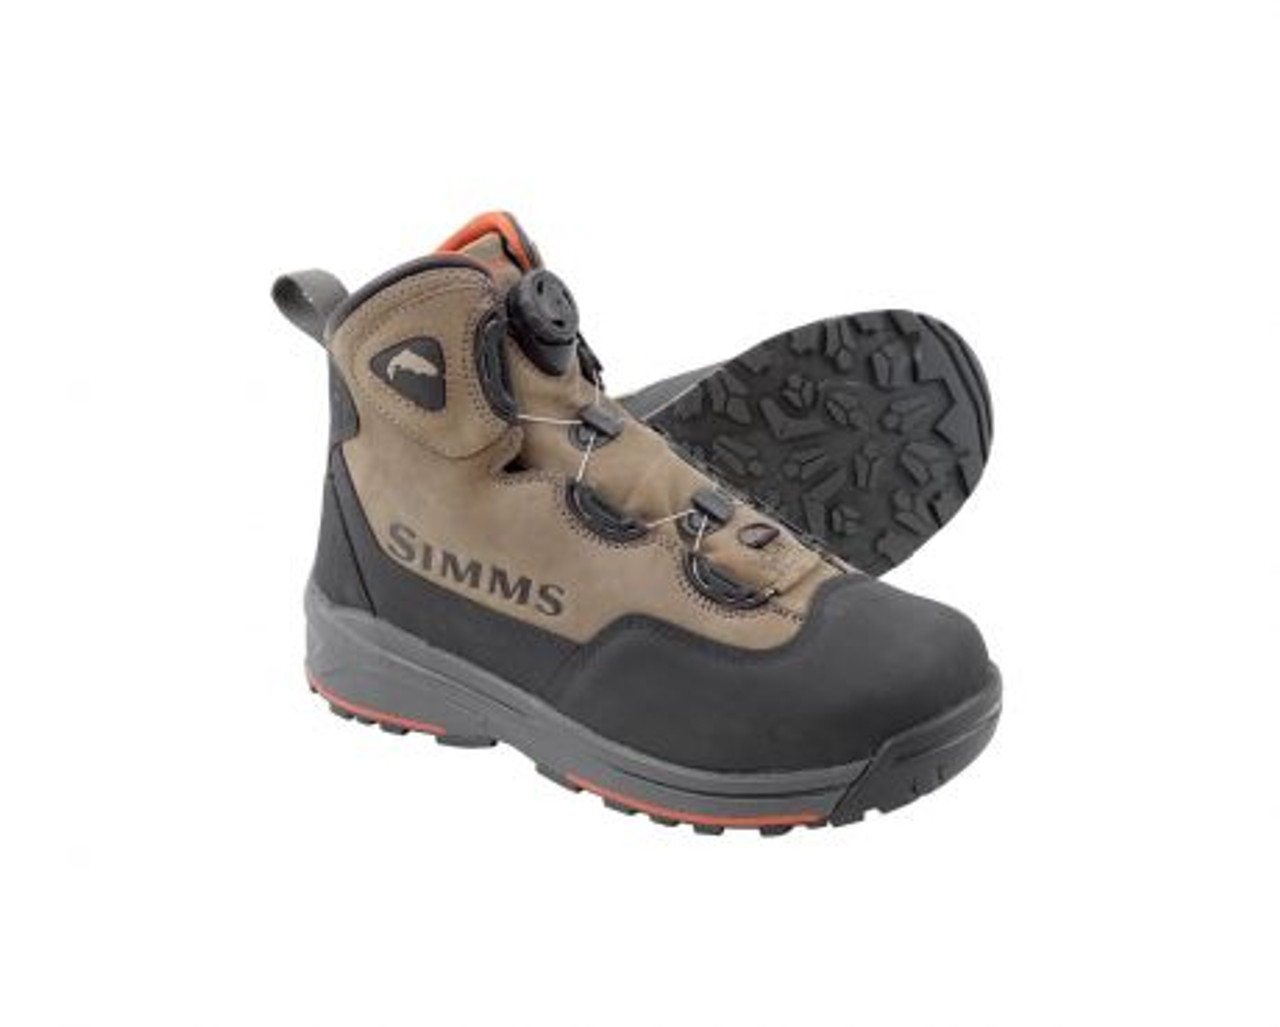 HEADWATERS BOA BOOT - VIBRAM